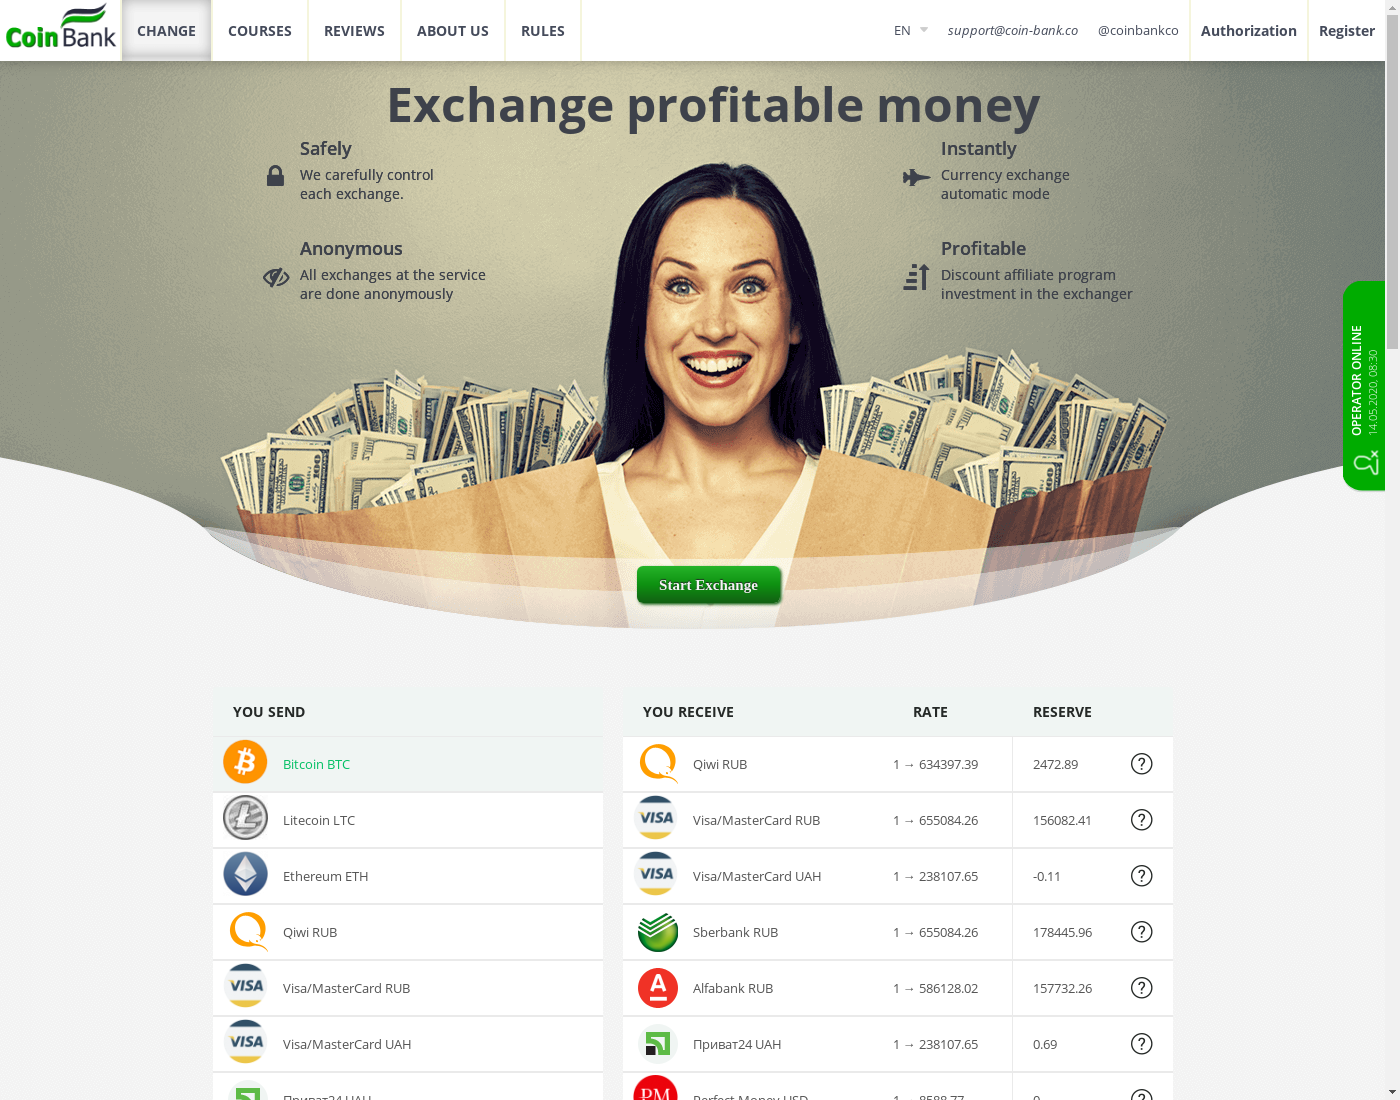 coin-bank user interface: the home page in English